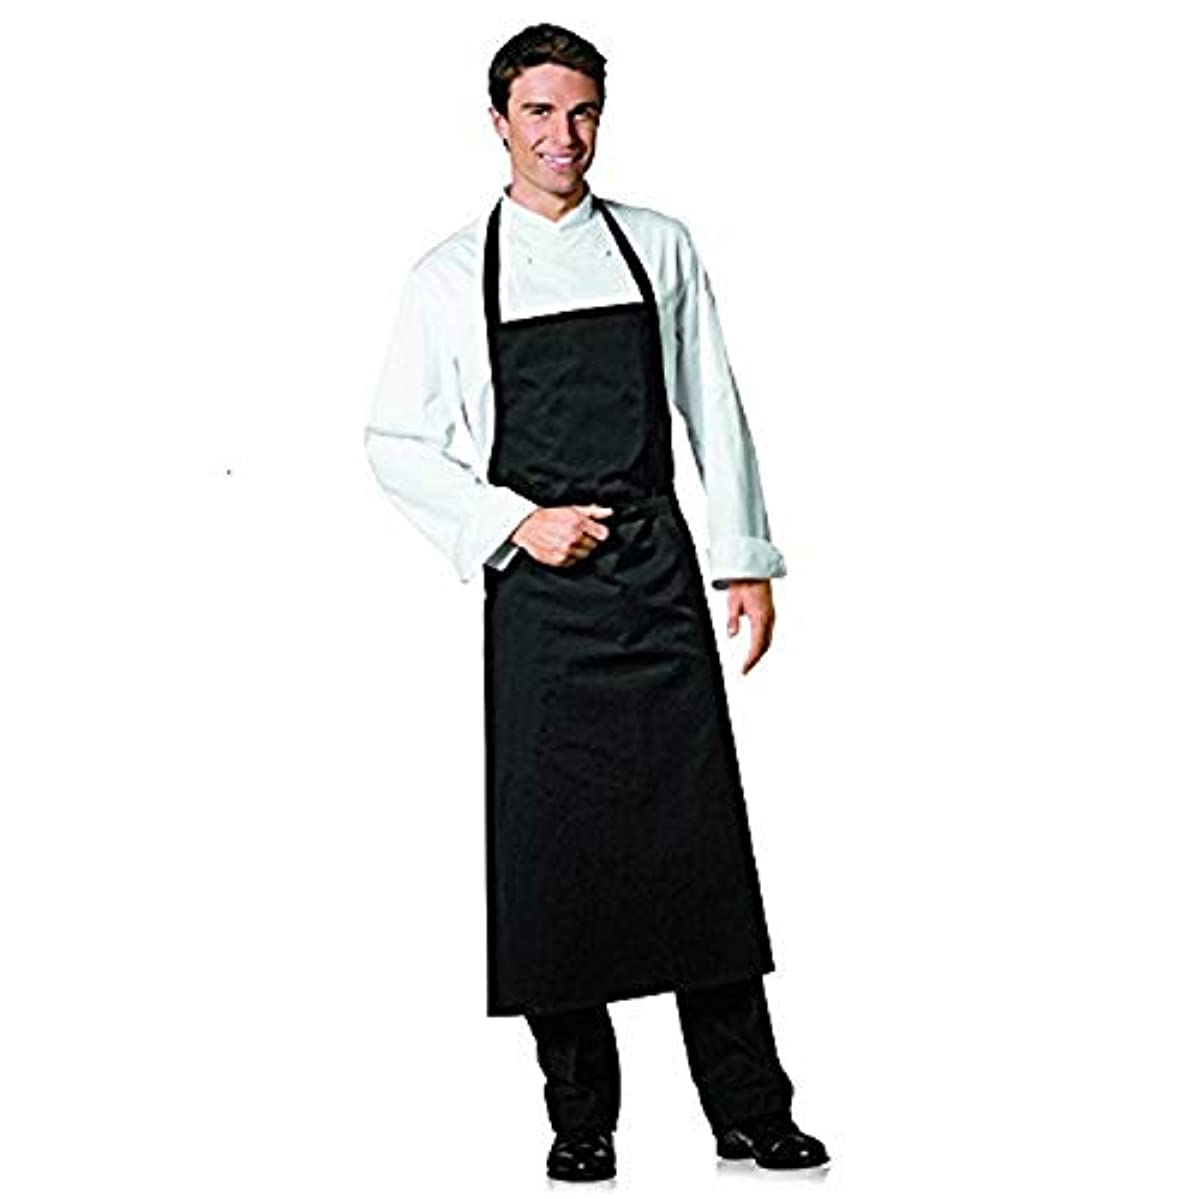 Bragard Professional Travel Bib Chef Apron Great for Any Kitchen Cotton - Black | One Size |